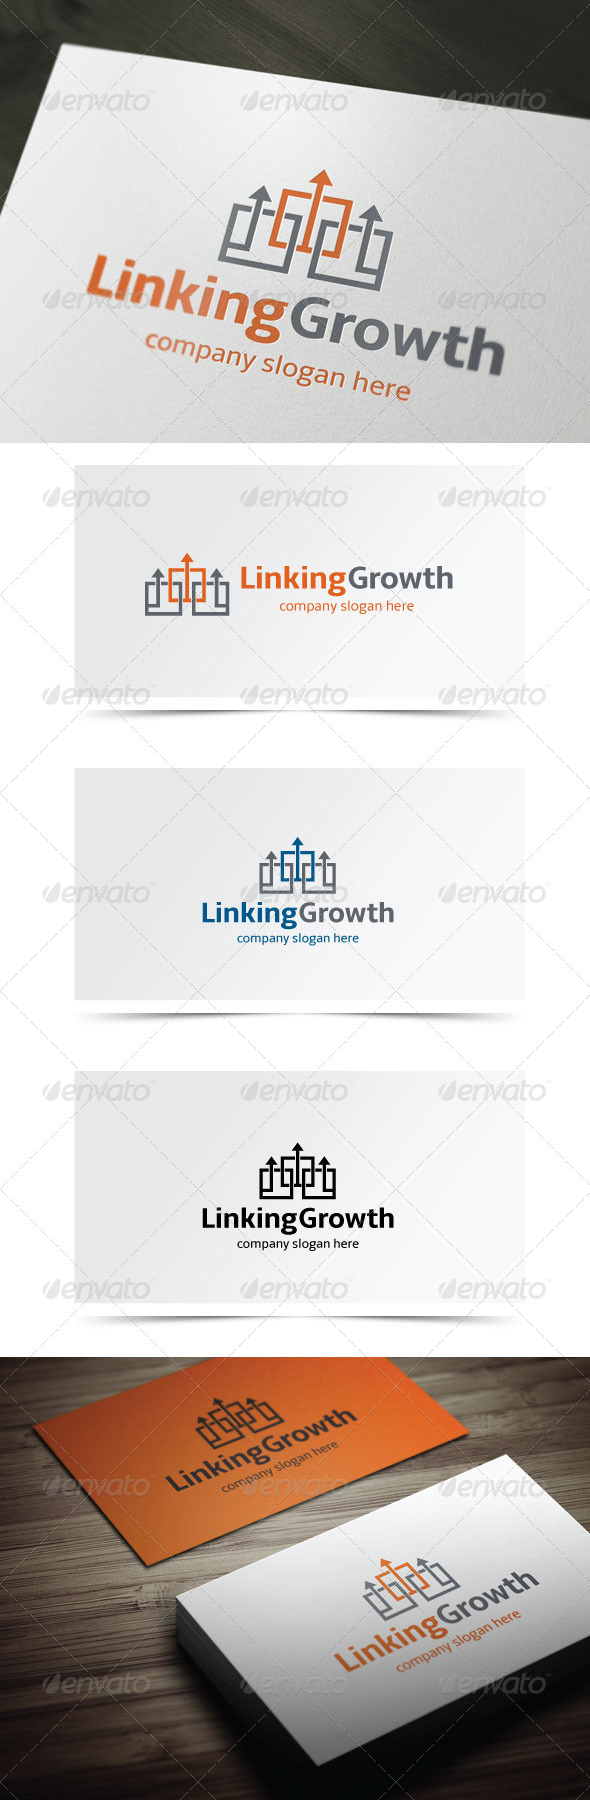 GraphicRiver Linking Growth 5776848